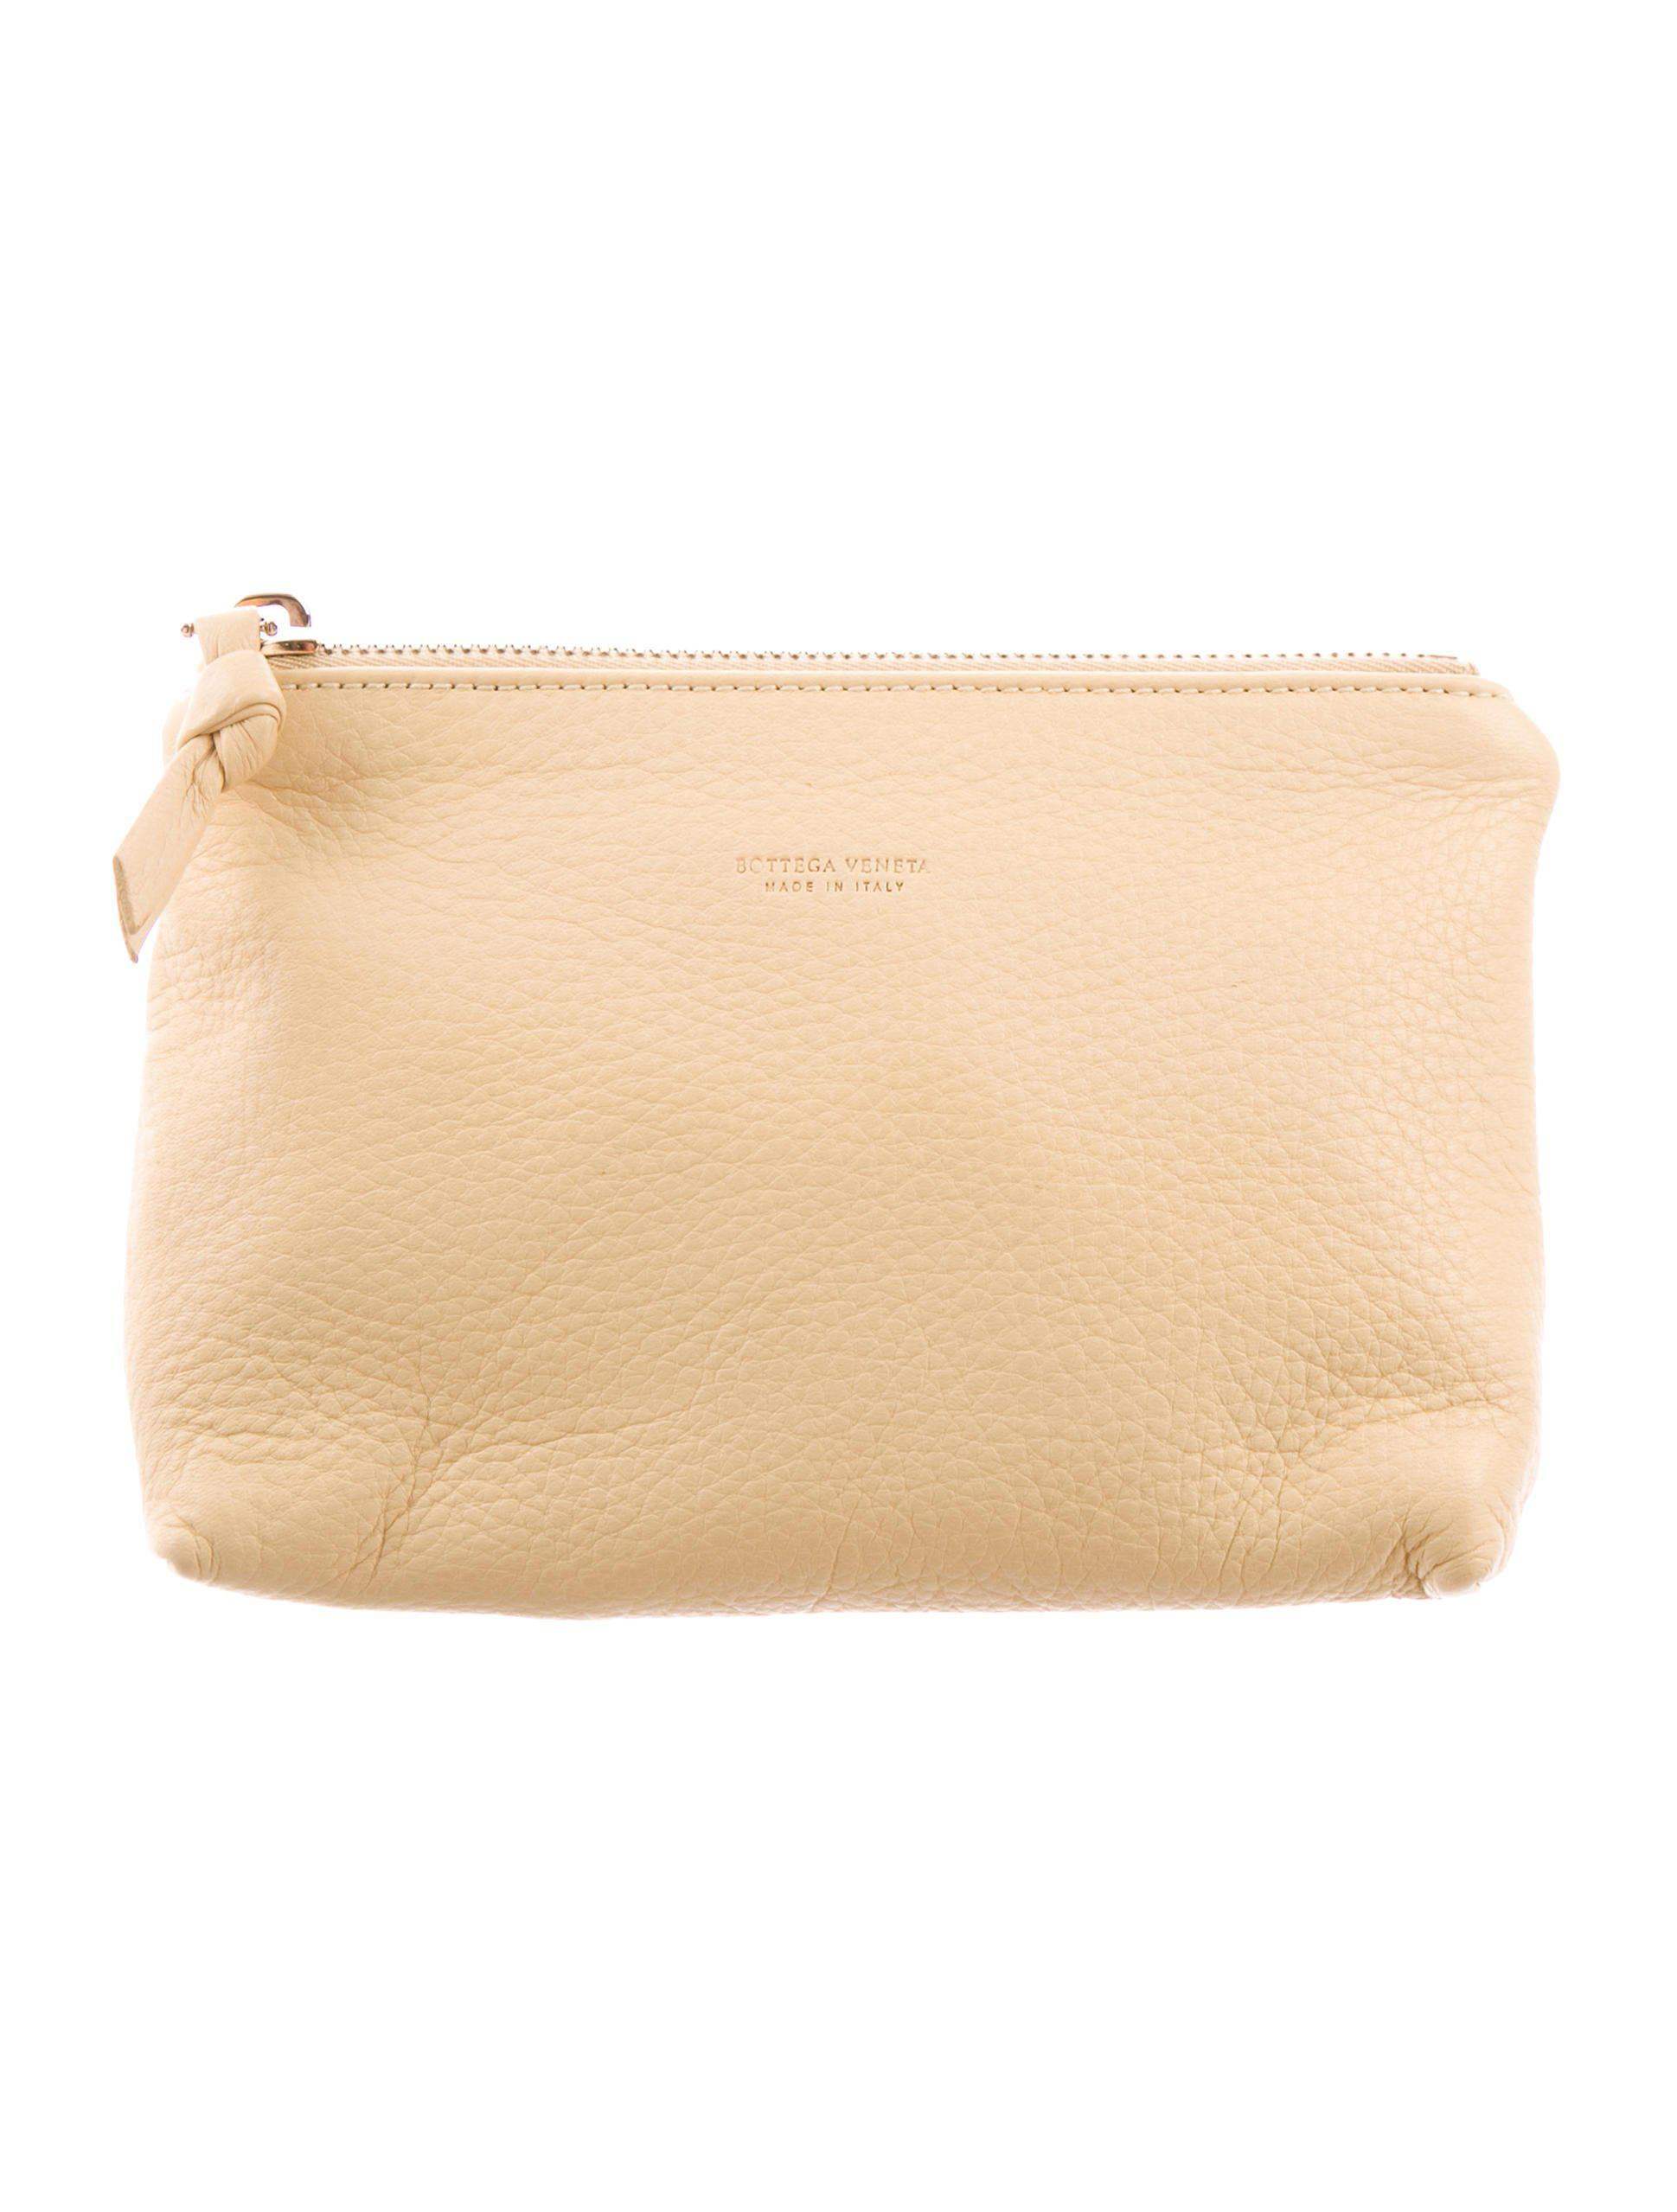 5bf987de97c7 Lyst - Bottega Veneta Leather Cosmetic Bag Tan in Natural